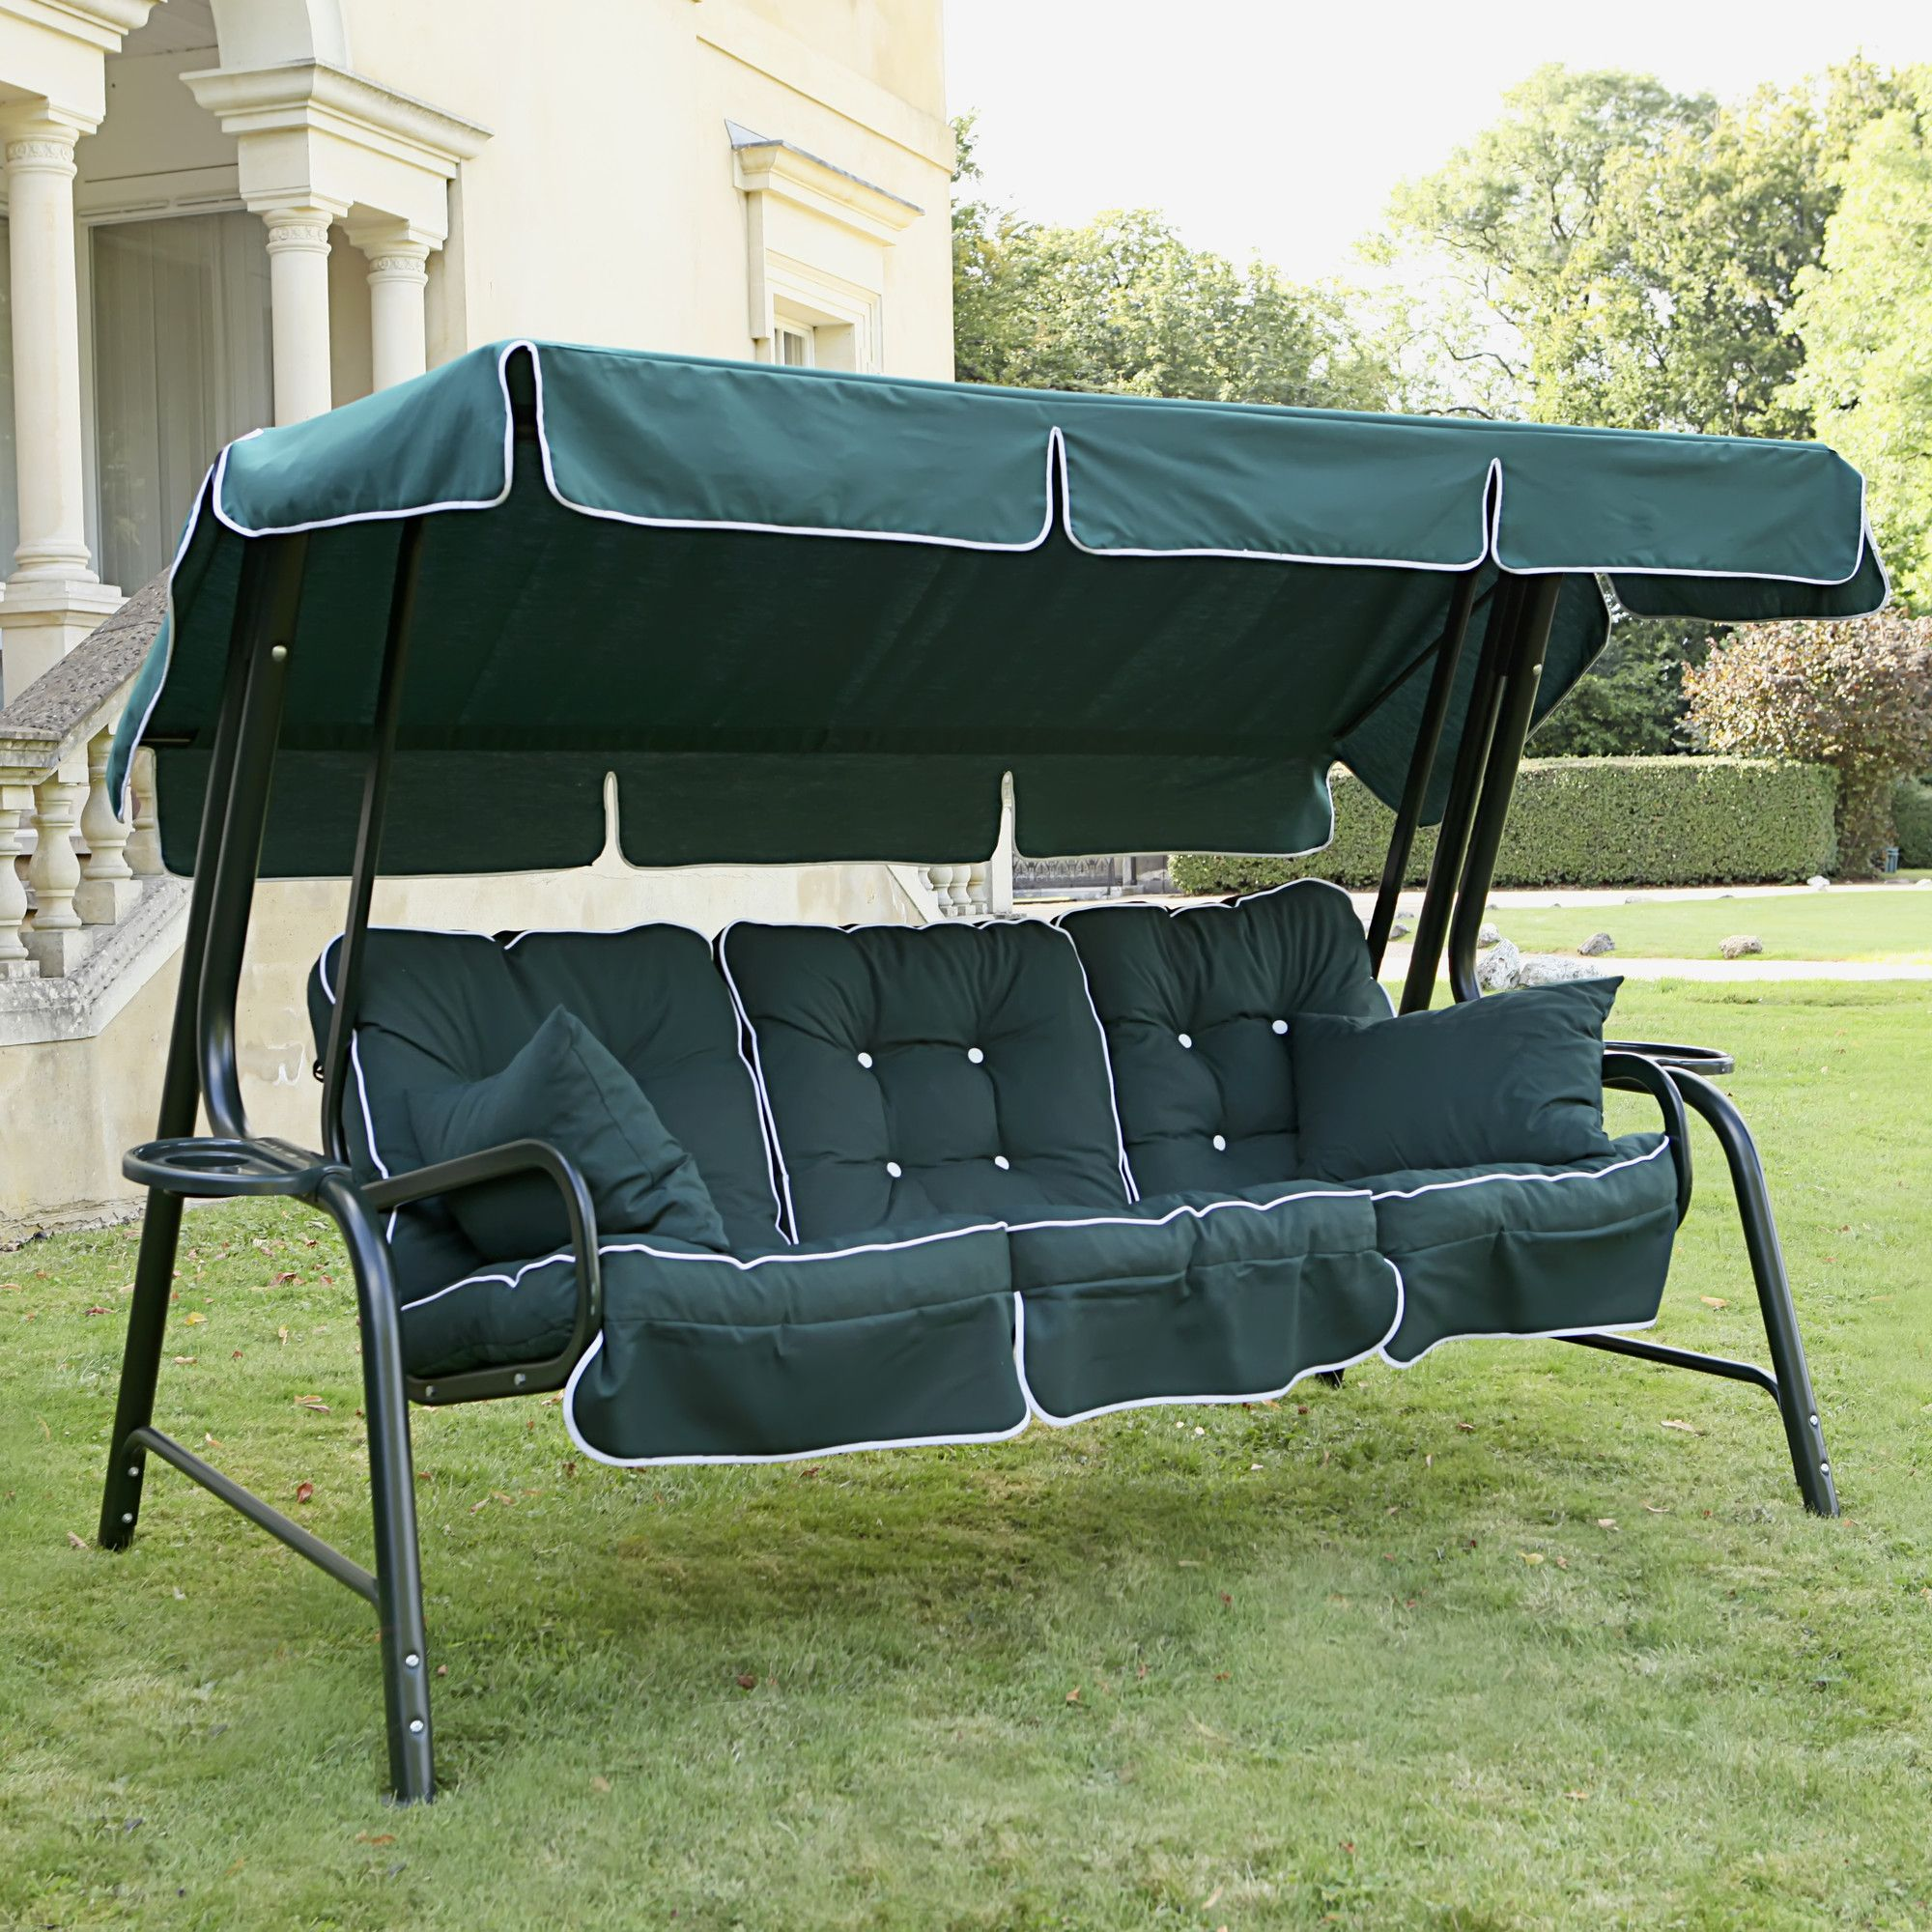 Garden Furniture 2014 Uk swift garden furniture lord boxed and piped swing seat & reviews